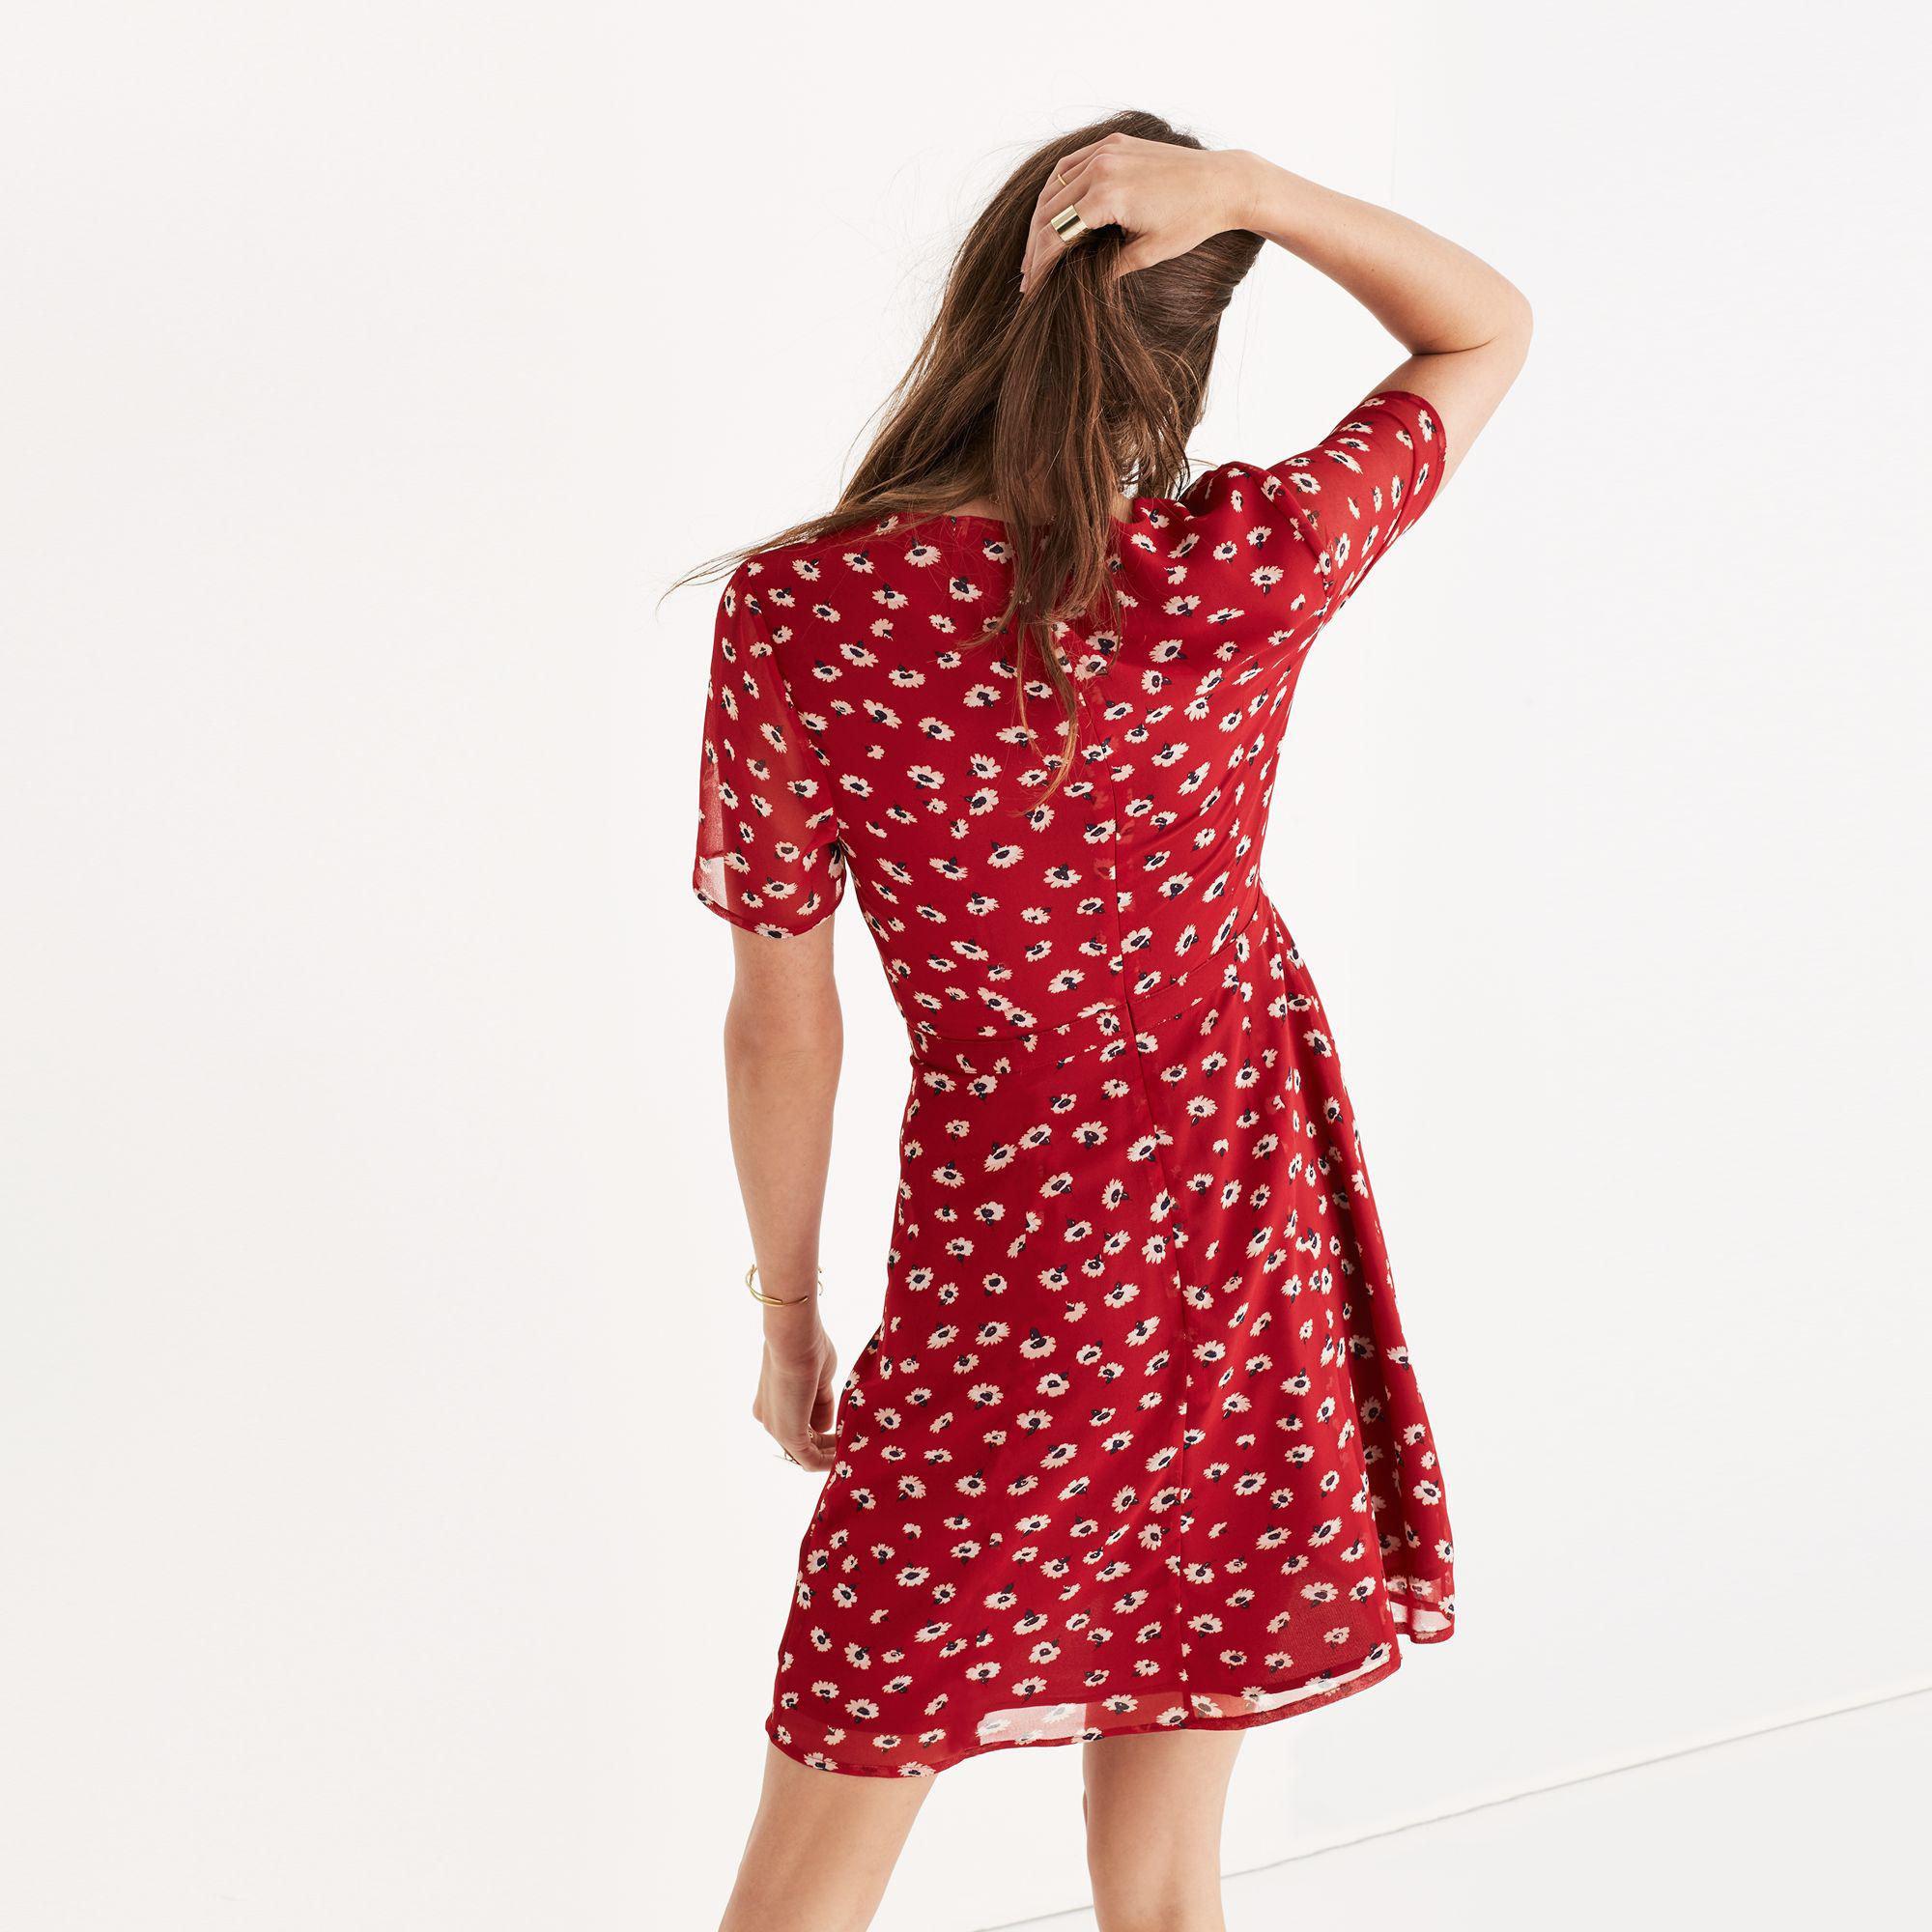 ee50bd59532 Madewell Wrap-front Mini Dress In Seattle Floral in Red - Lyst